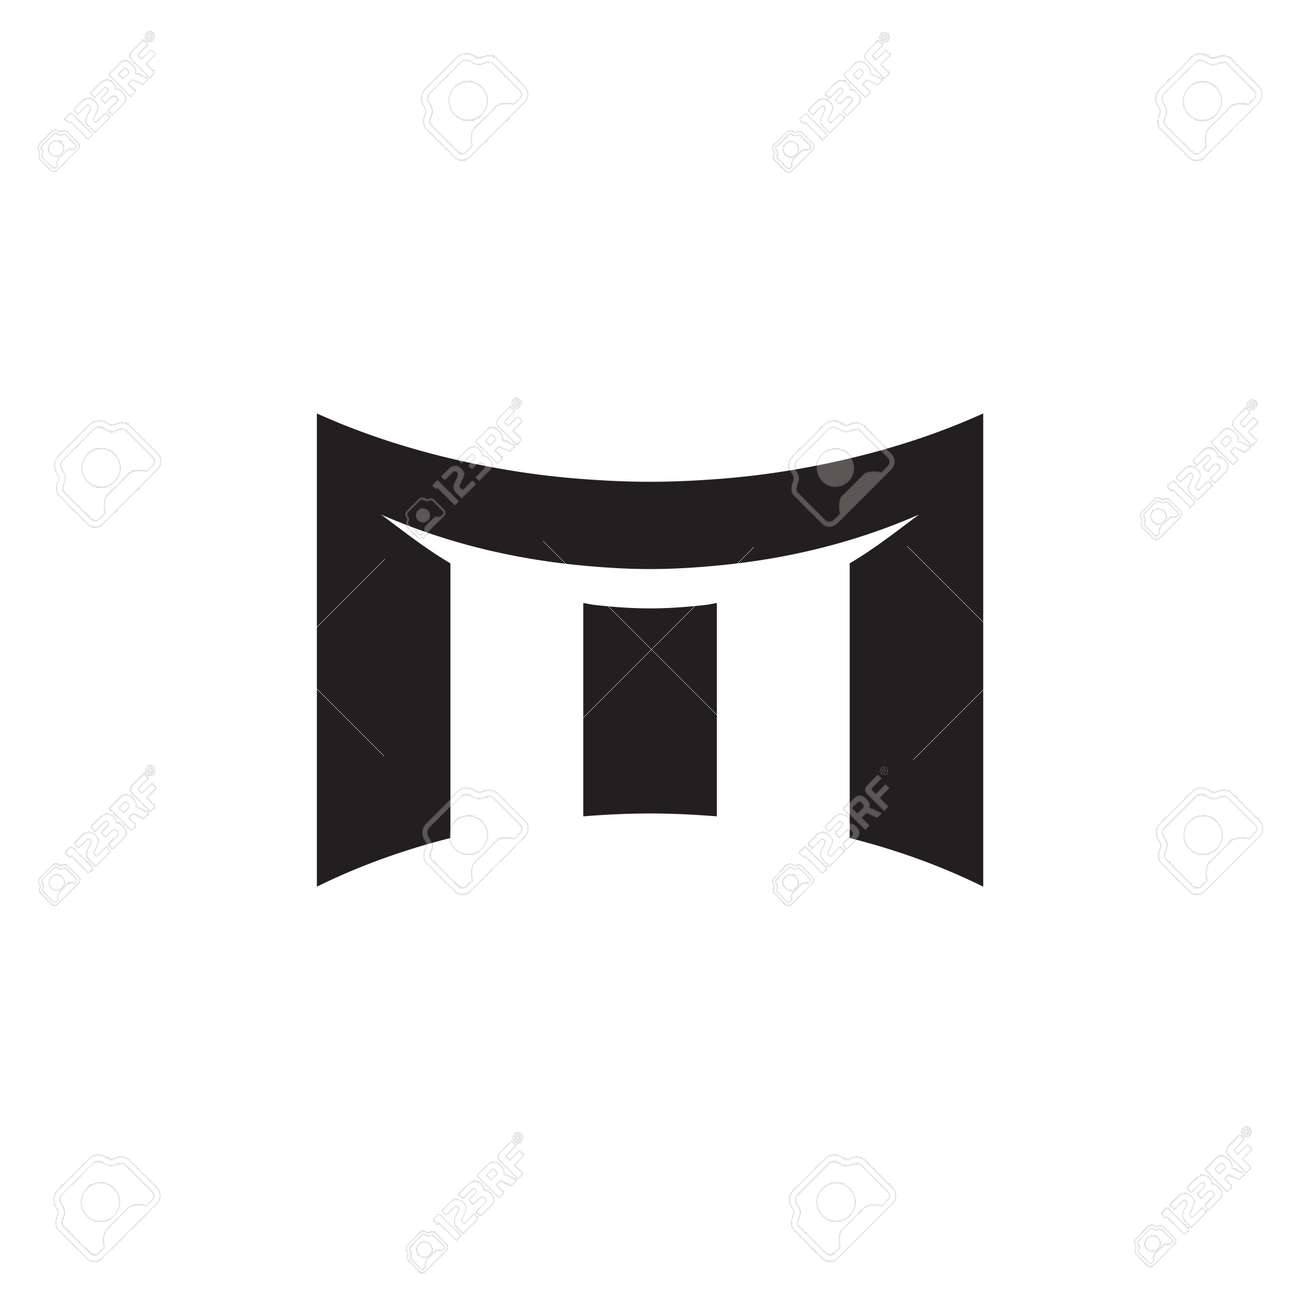 m initial letter vector logo icon - 157647542